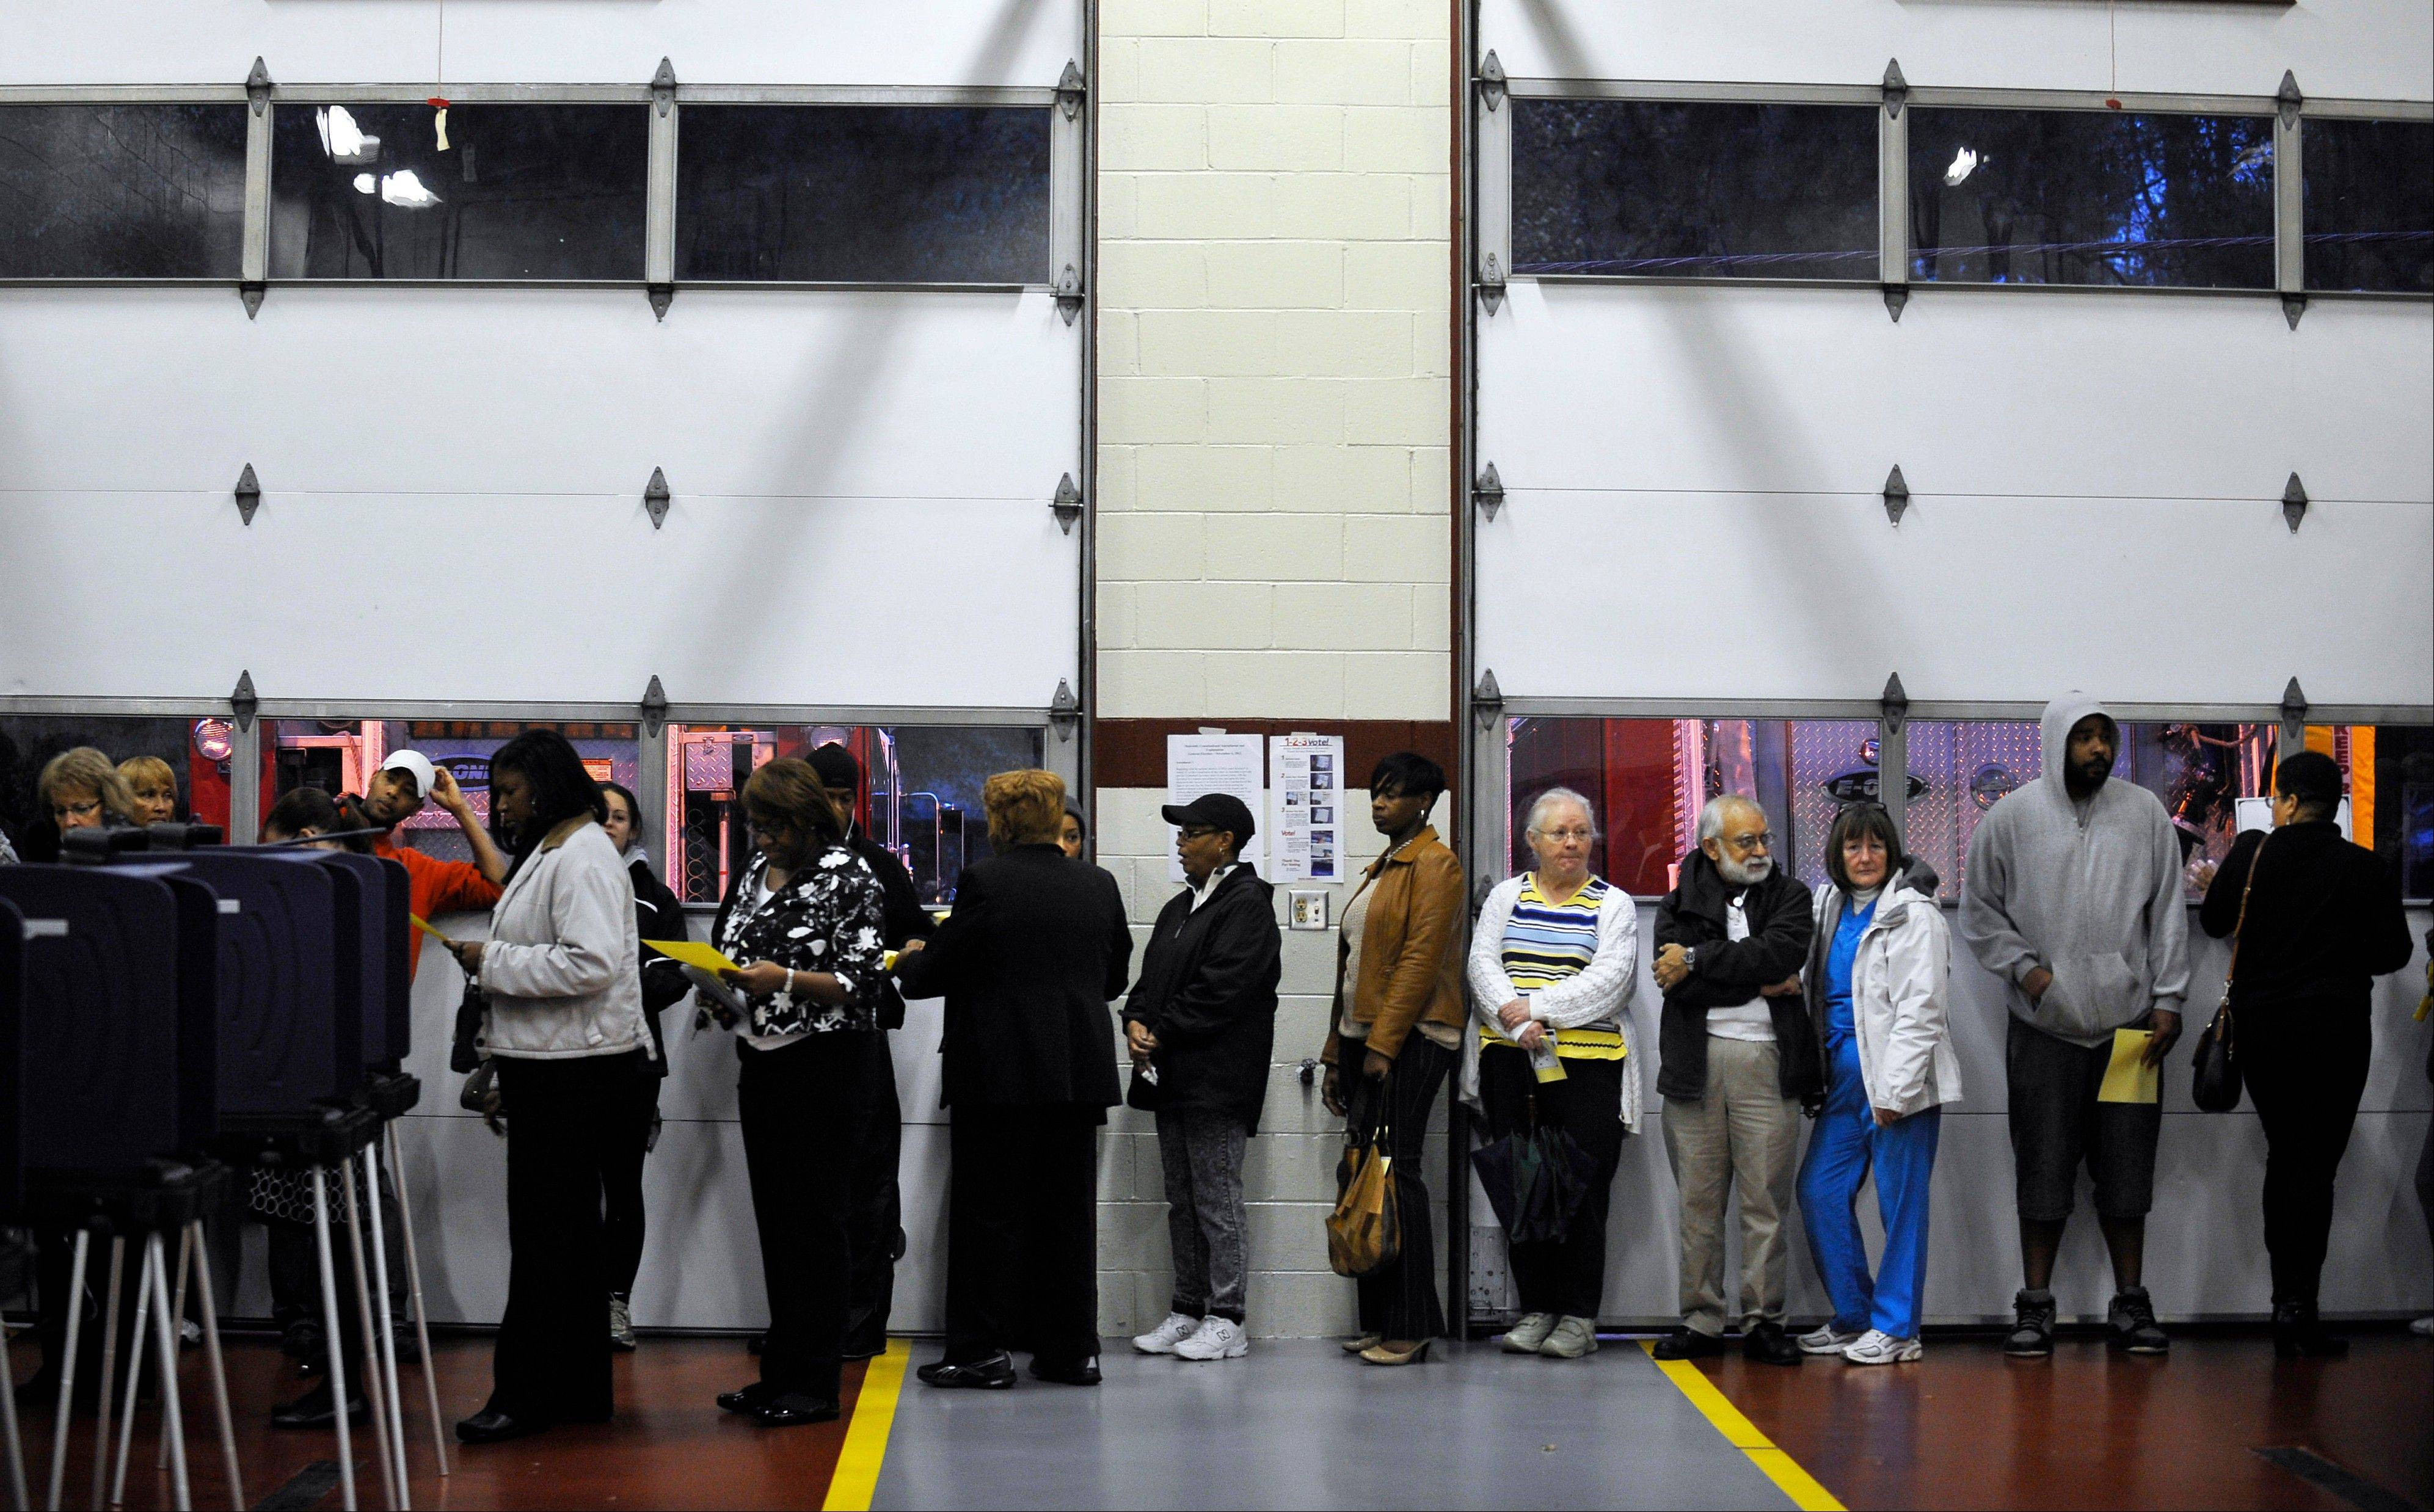 Voters wait in line to cast their ballots at the Mauldin Fire Station on Election Day, Tuesday, Nov. 6, 2012, in Mauldin, S.C.